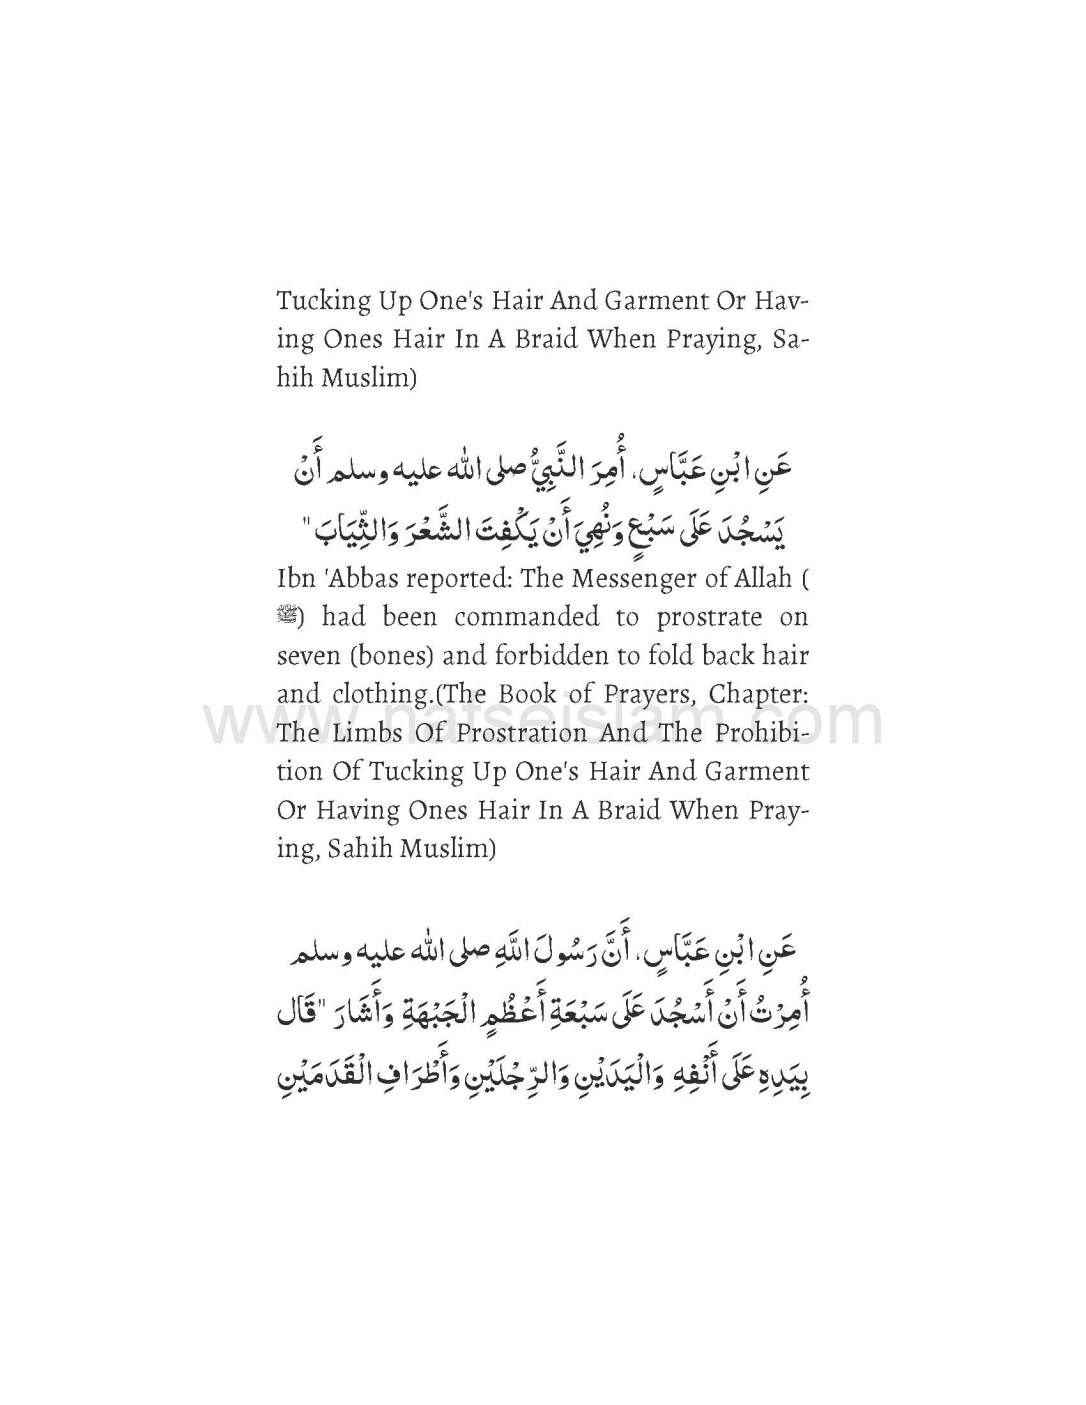 Islamic Ruling On Folding Pants In Salah_Page_12